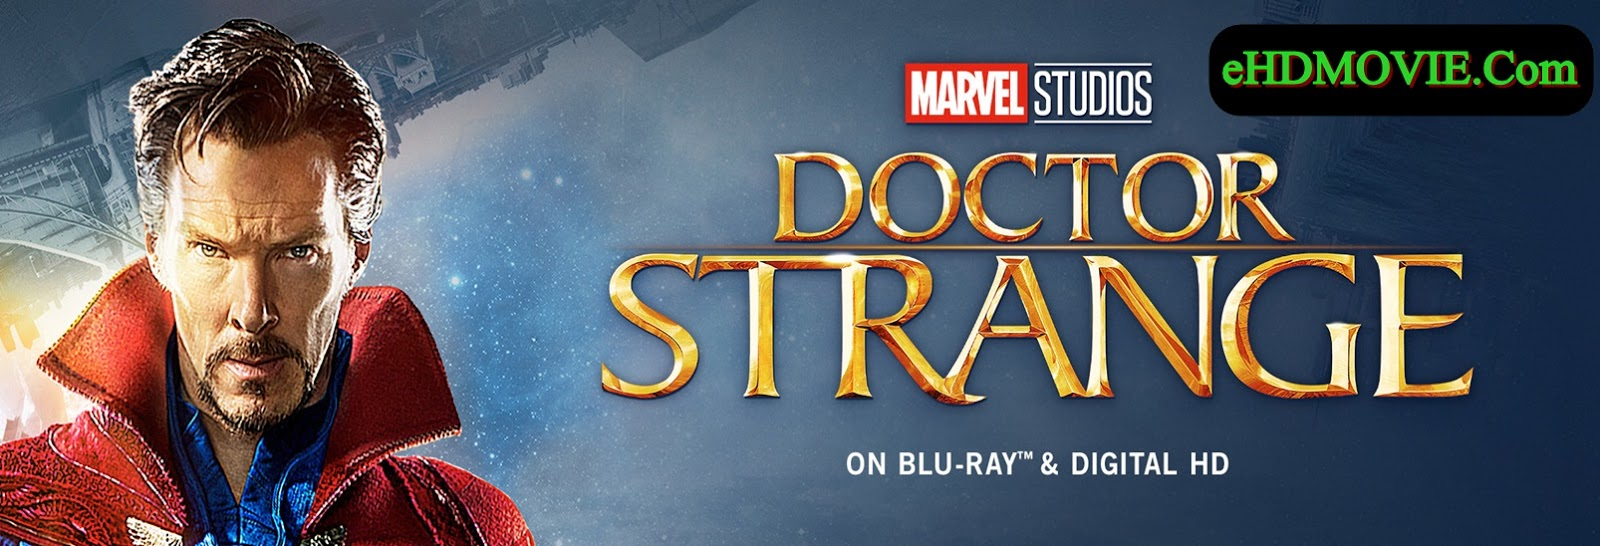 Doctor Strange 2016 Full Movie Dual Audio [Hindi – English] 1080p - 720p - 480p ORG BRRip 350MB - 1GB - 2.4GB ESubs Free Download